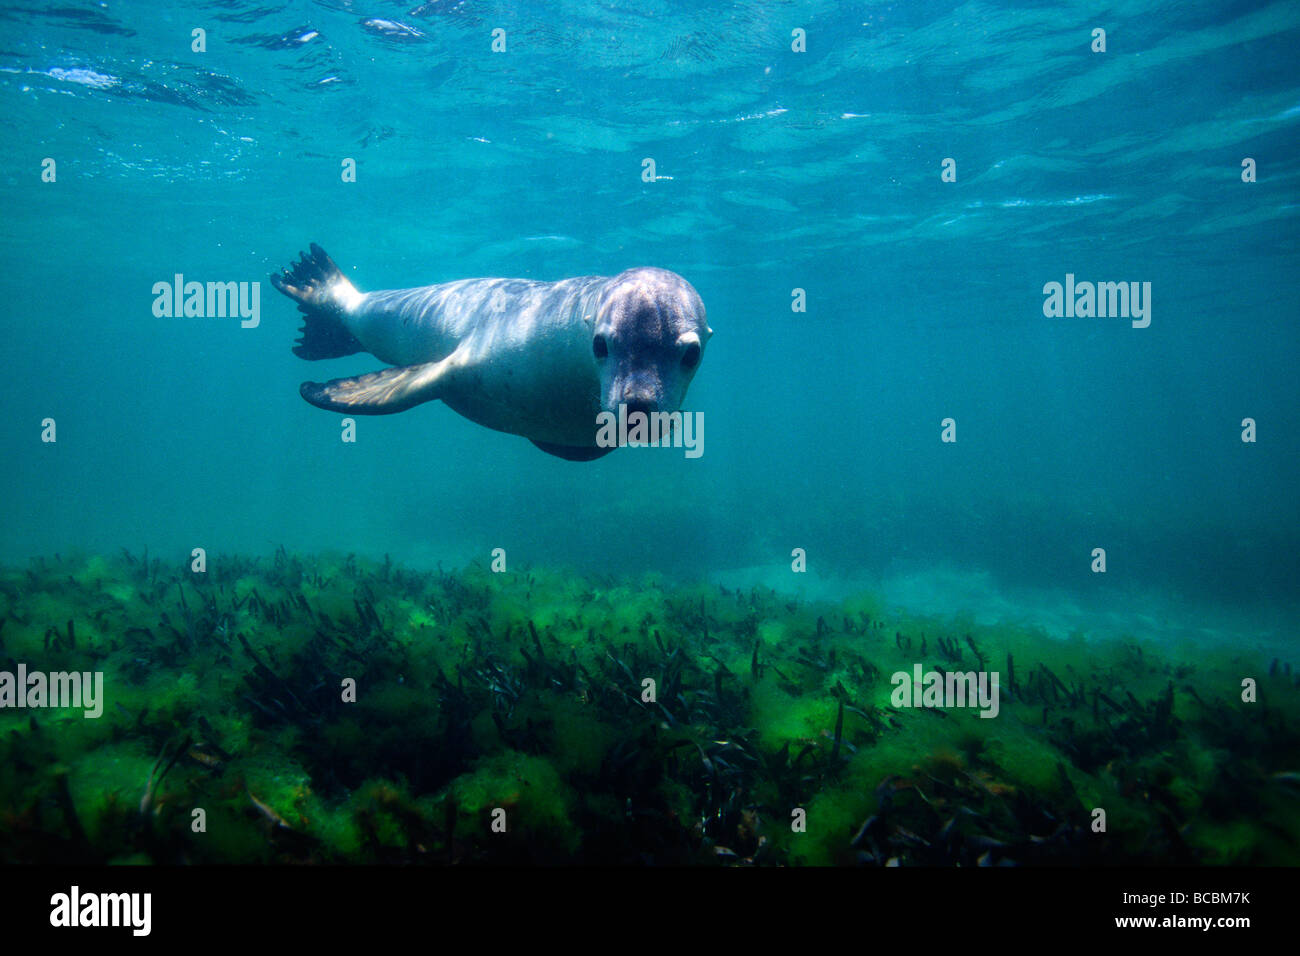 Sea Lion swimming underwater - Stock Image